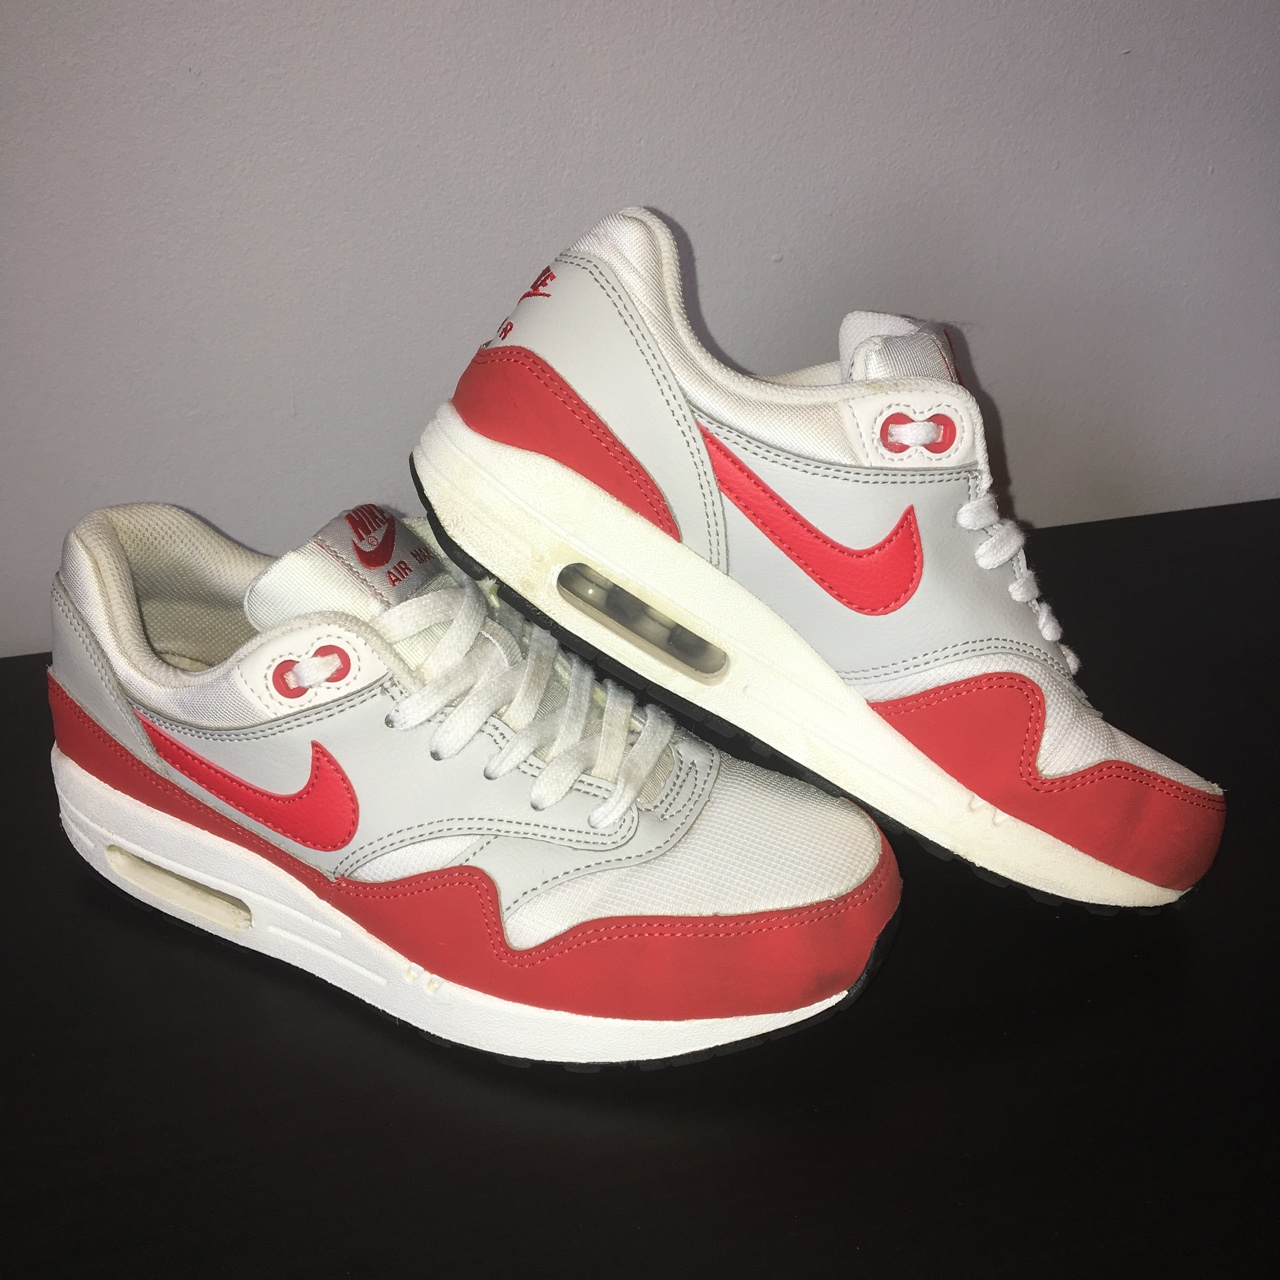 NIKE AIR MAX 1 anniversary Red. White and red ⚪️</div>